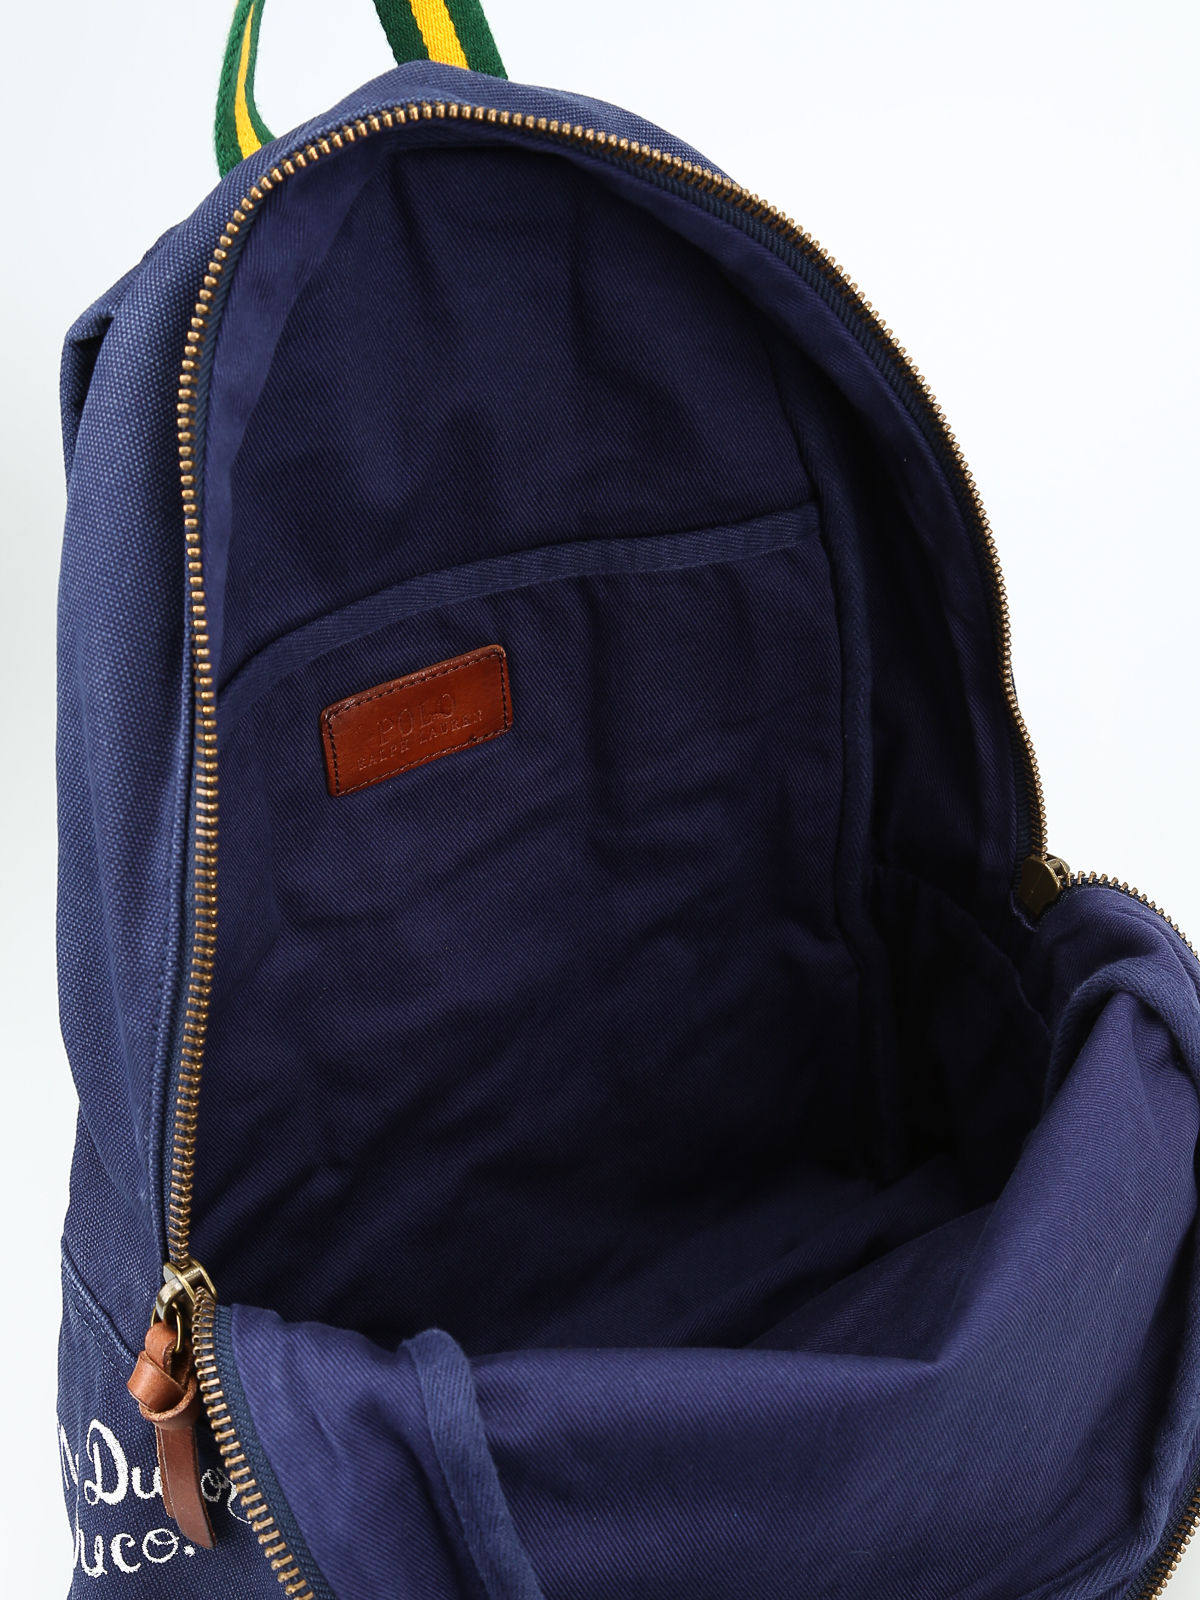 2e5df3f19e4 POLO RALPH LAUREN buy online Printed blue canvas backpack with patch